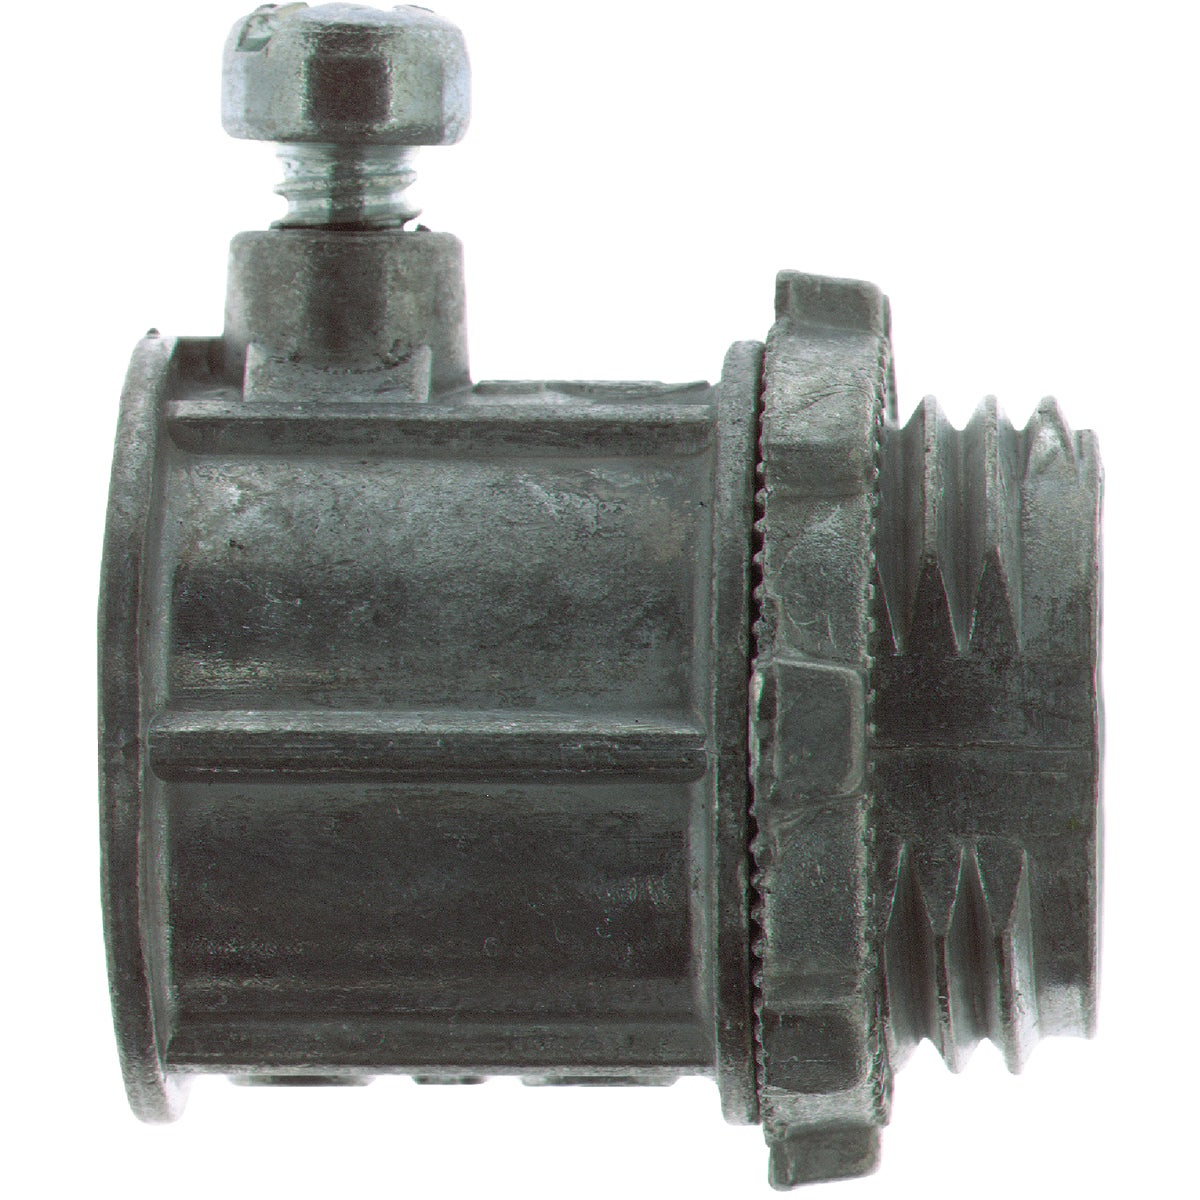 "5PC 3/4"" EMT CONNECTOR"